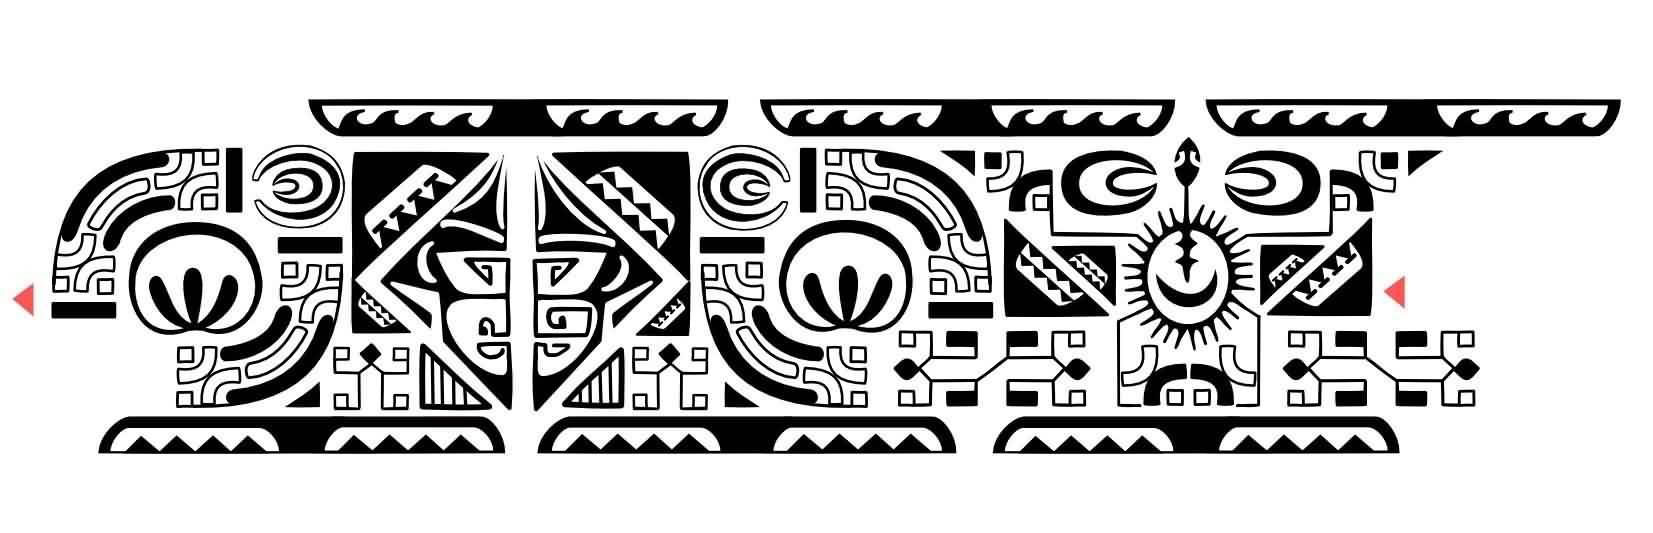 New Black Ink Polynesian Ankle Band Tattoo Design